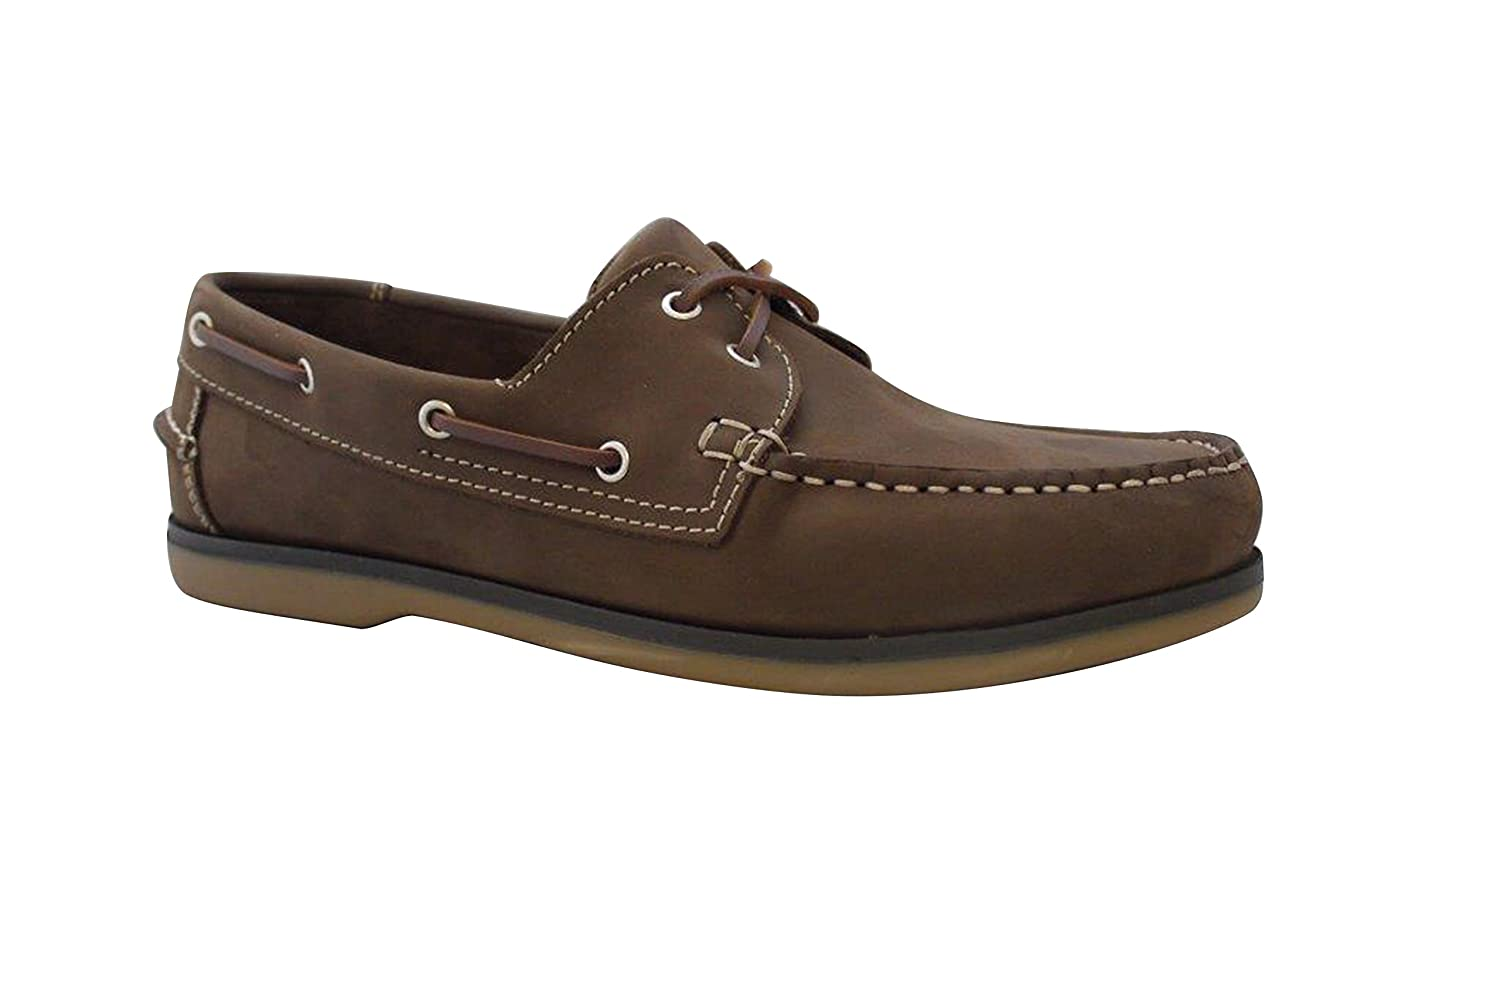 Kanyon Amalfi Mens Boat Deck Shoes Casual Nubuck Leather Rubber Sole